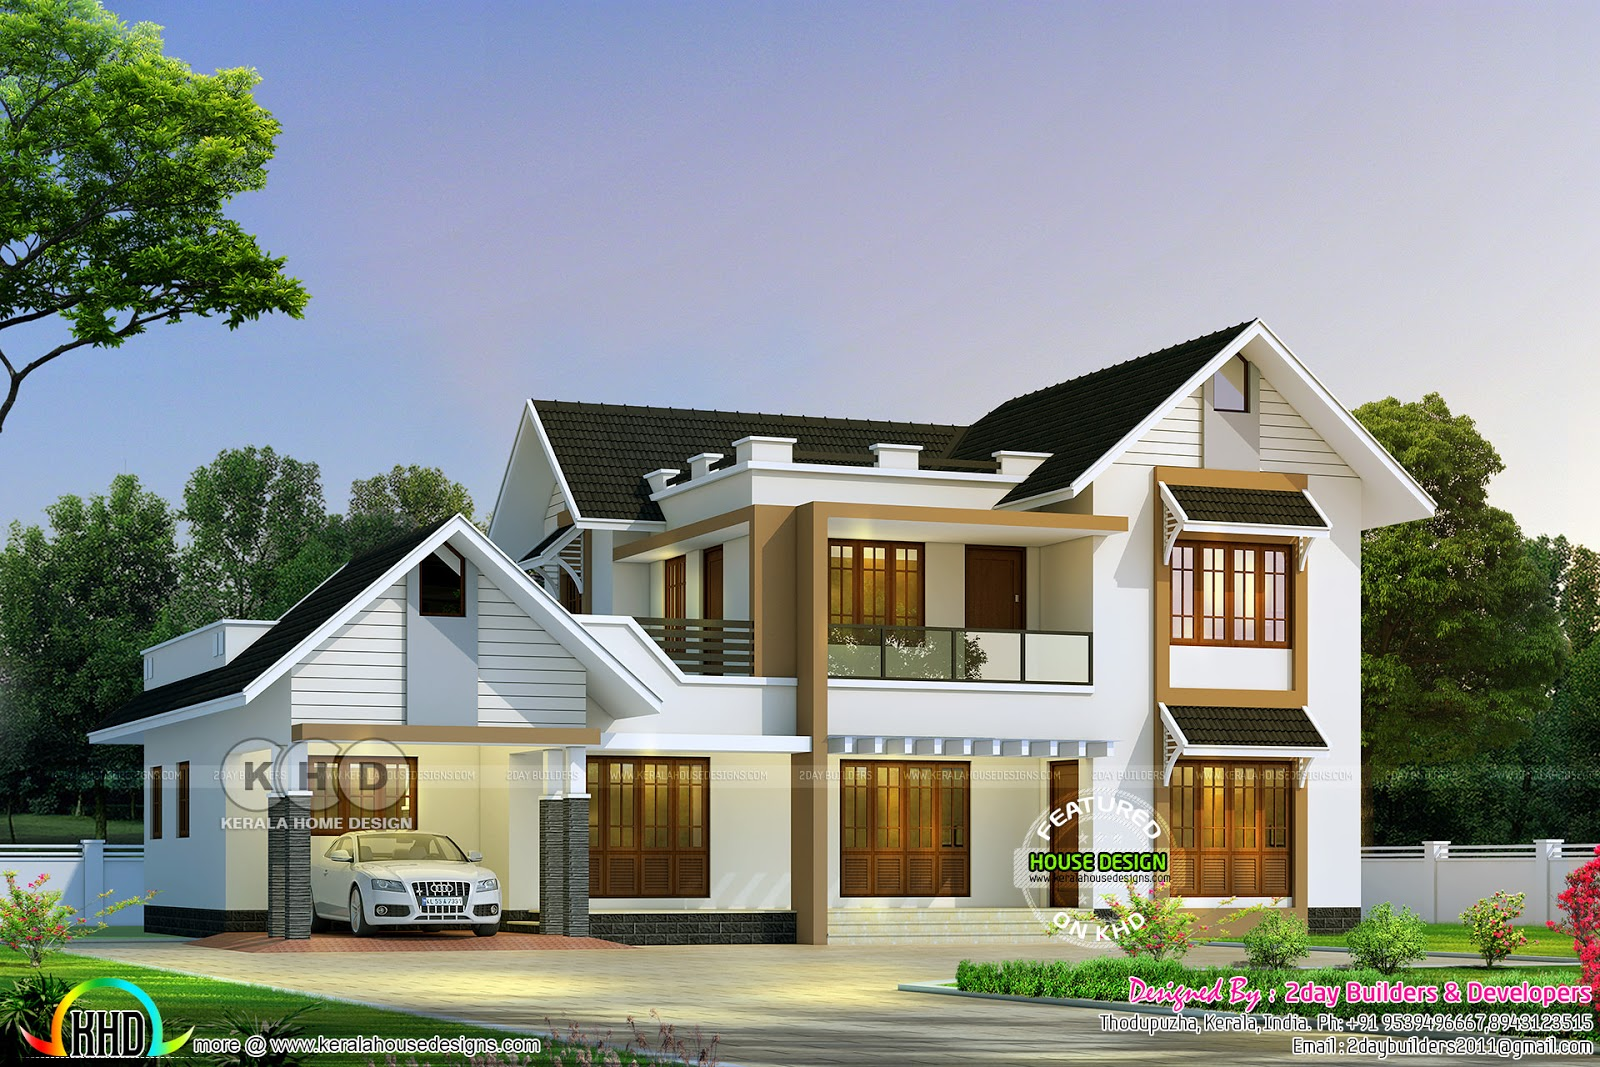 2017 kerala home design and floor plans for House plans and designs